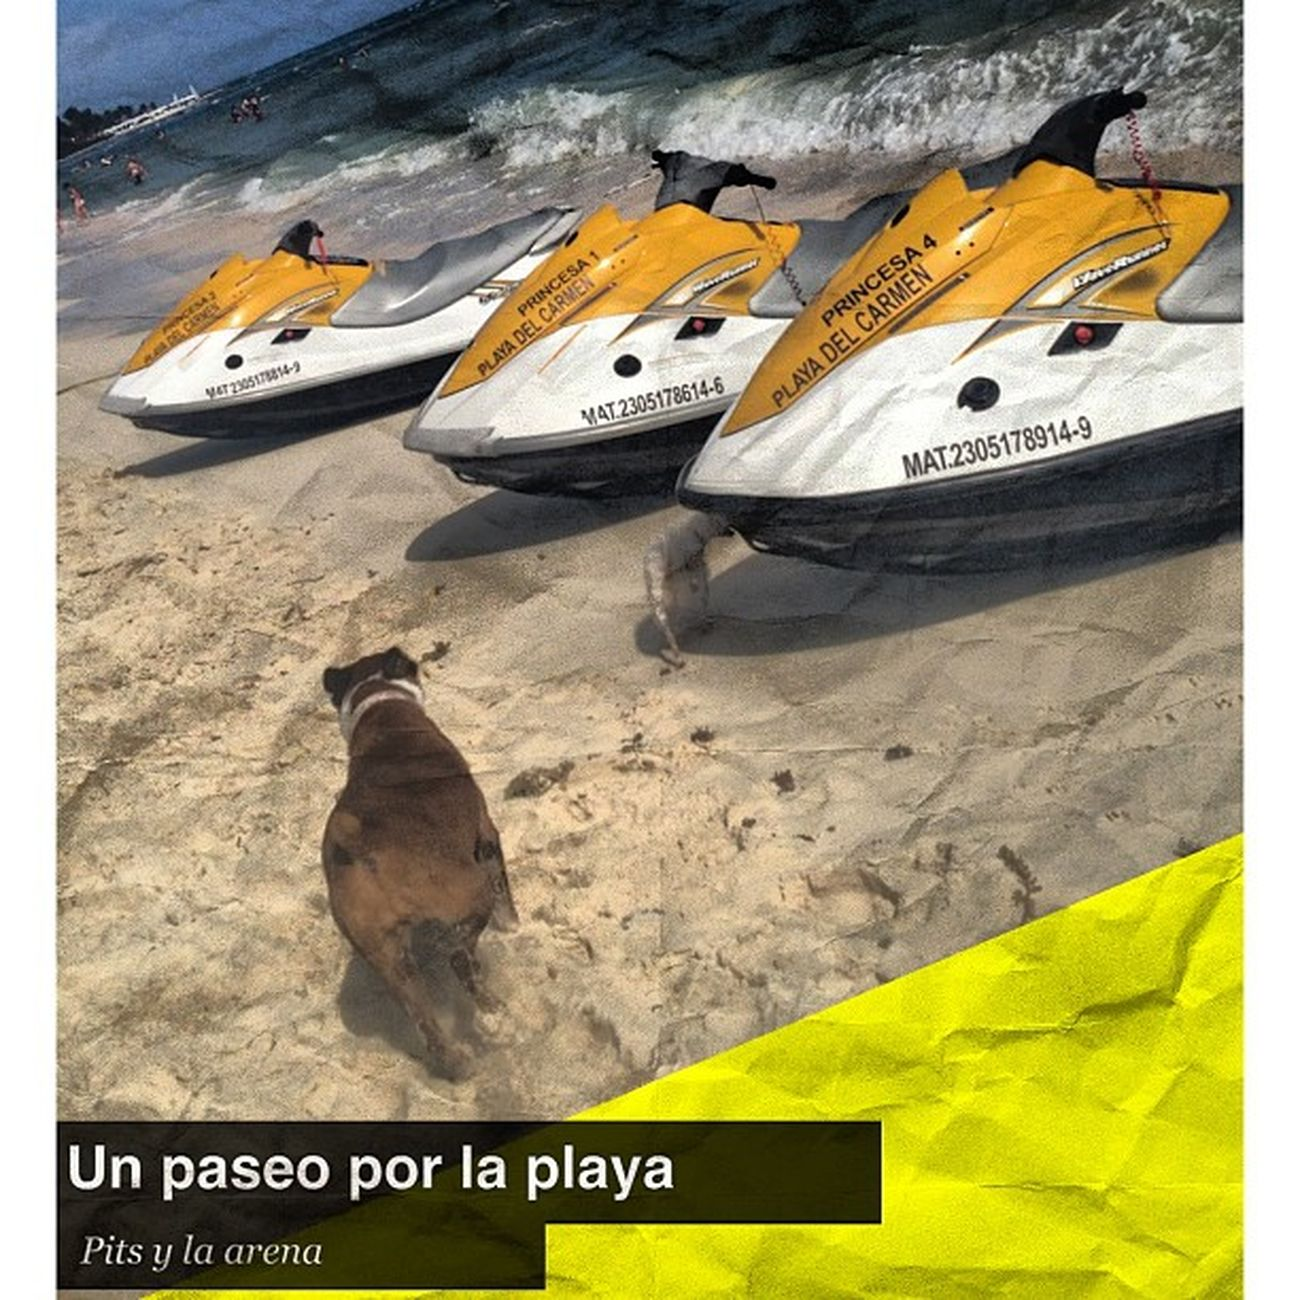 Pita #playa #squaready #quintanaroo #cancun #playadelcarmen #traveler #travel #jetsky #sun #sunset Sun Sunset Travel Playa Iphonesia Picoftheday Cancun Traveler Squaready Playadelcarmen Jetsky Quintanaroo